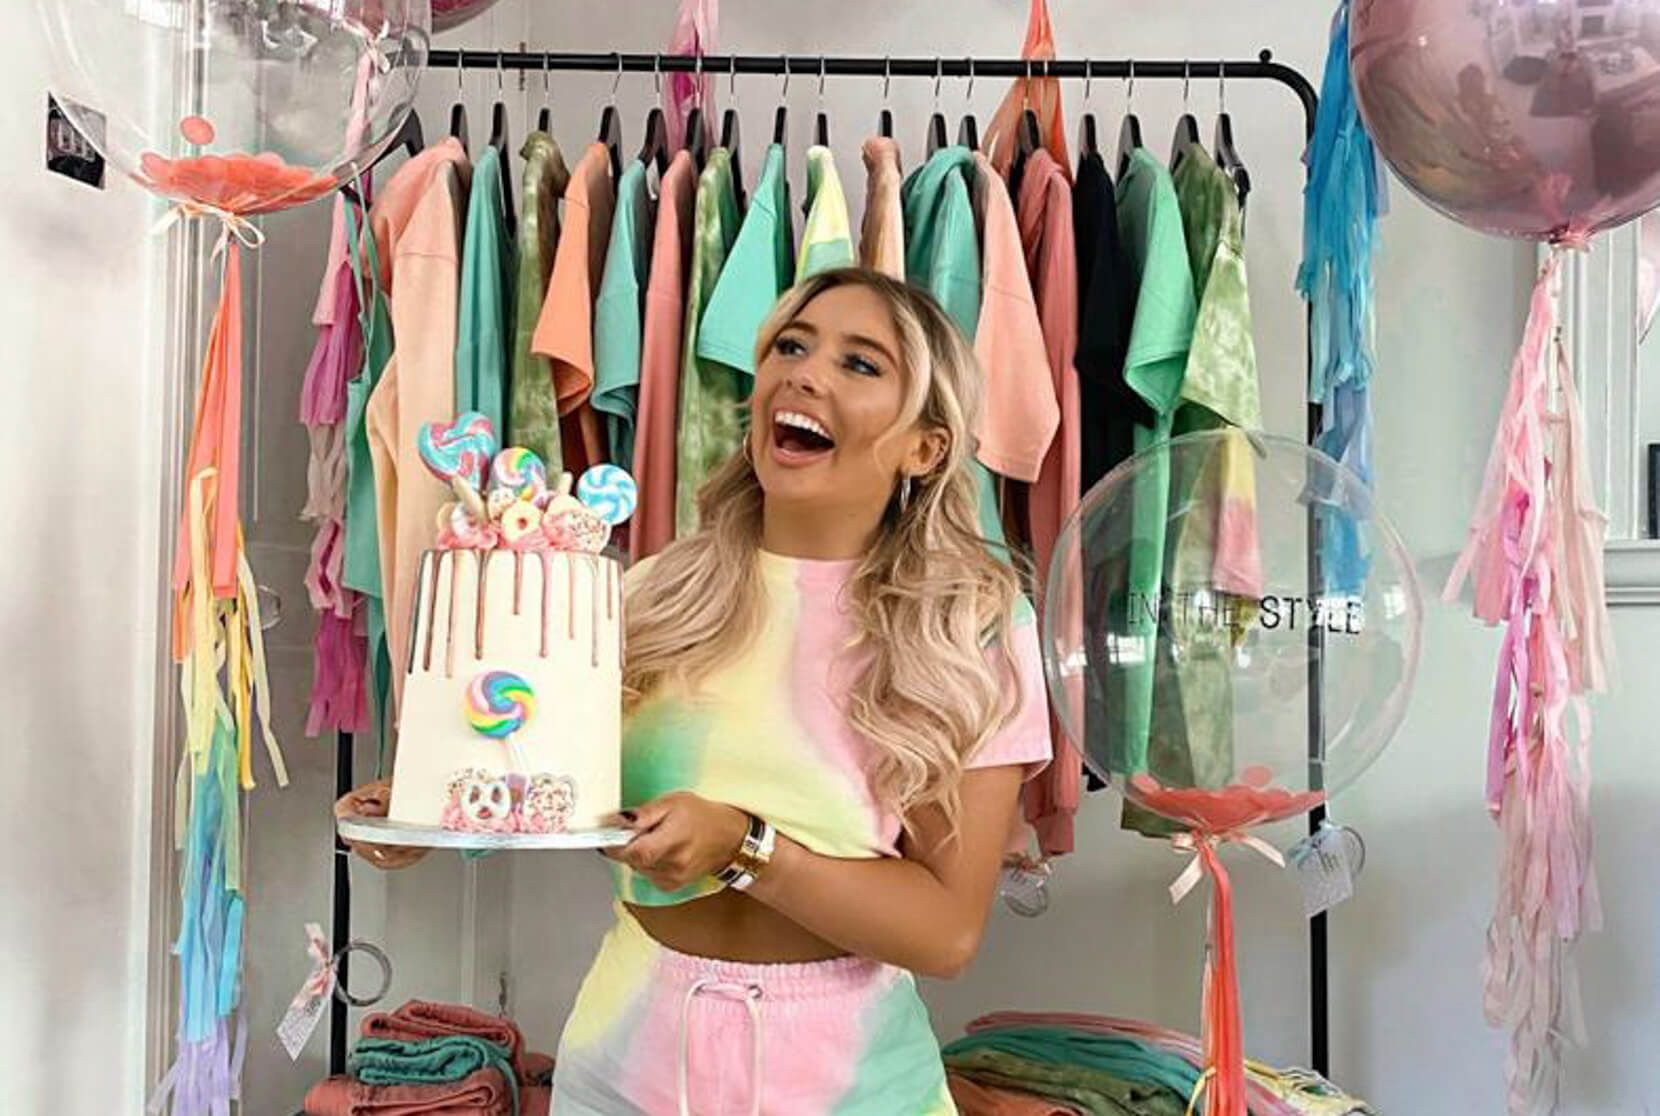 Influencer Saffron Barker laughs whilst holding a cake, in front of a clothing rail